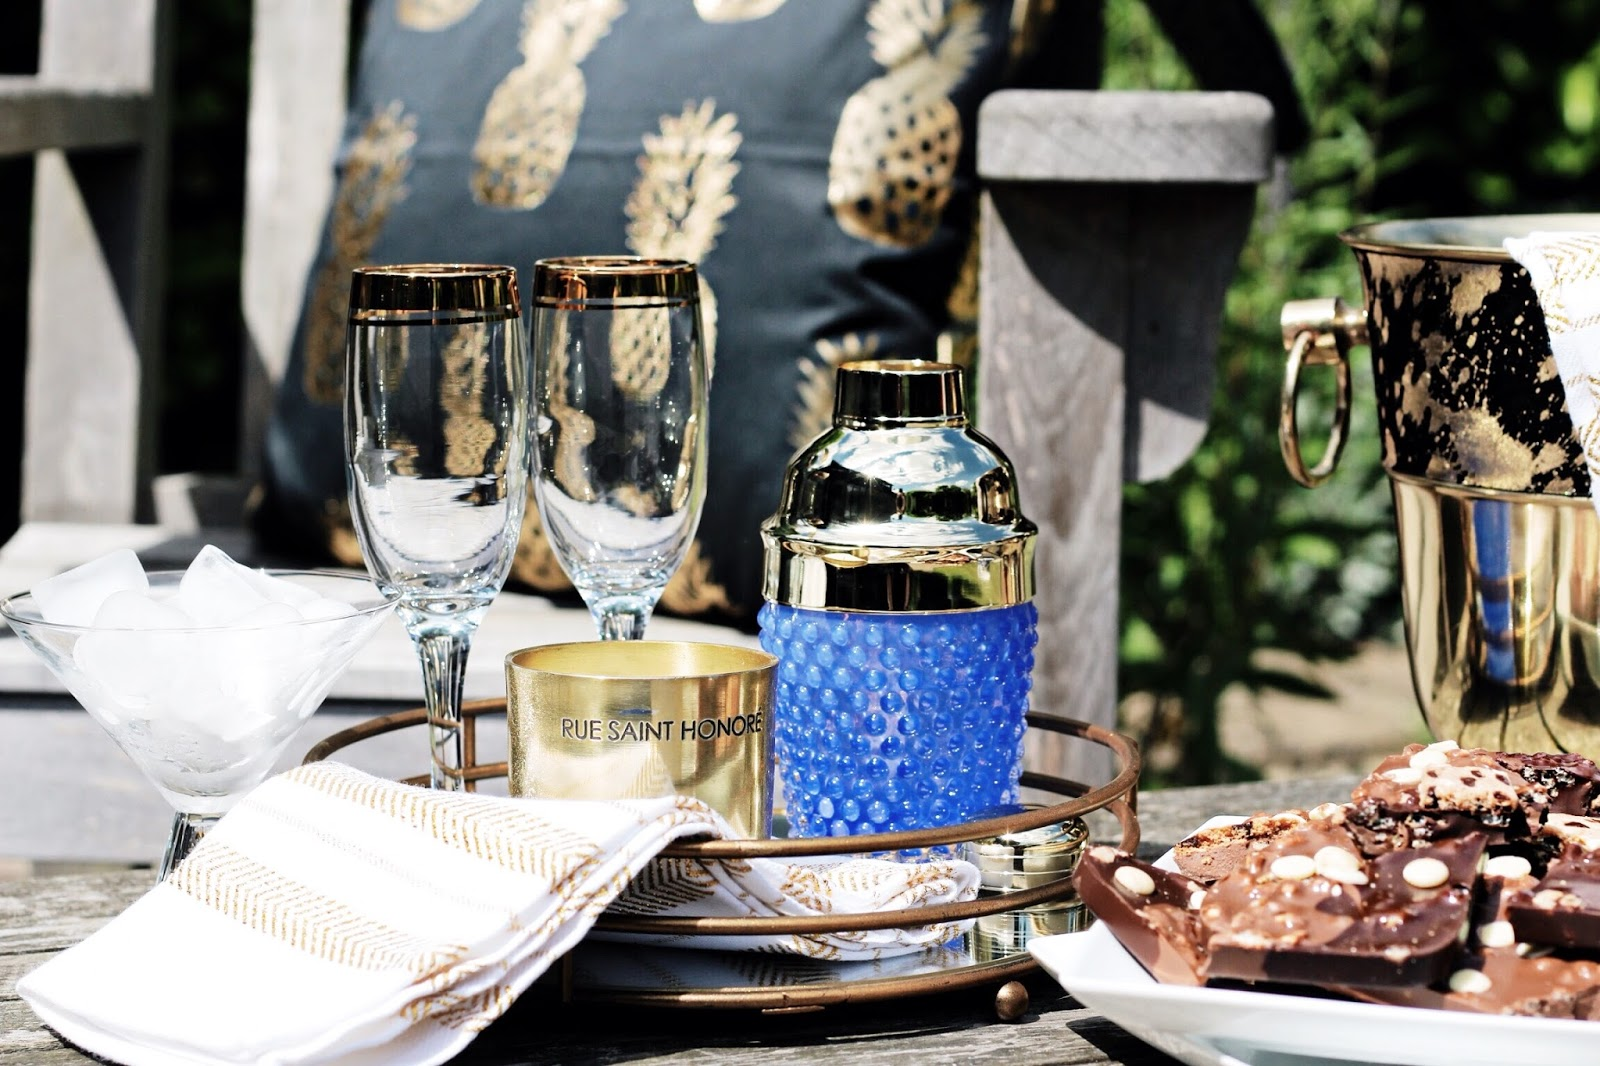 Luxury Outdoor Drinks Dining Setting